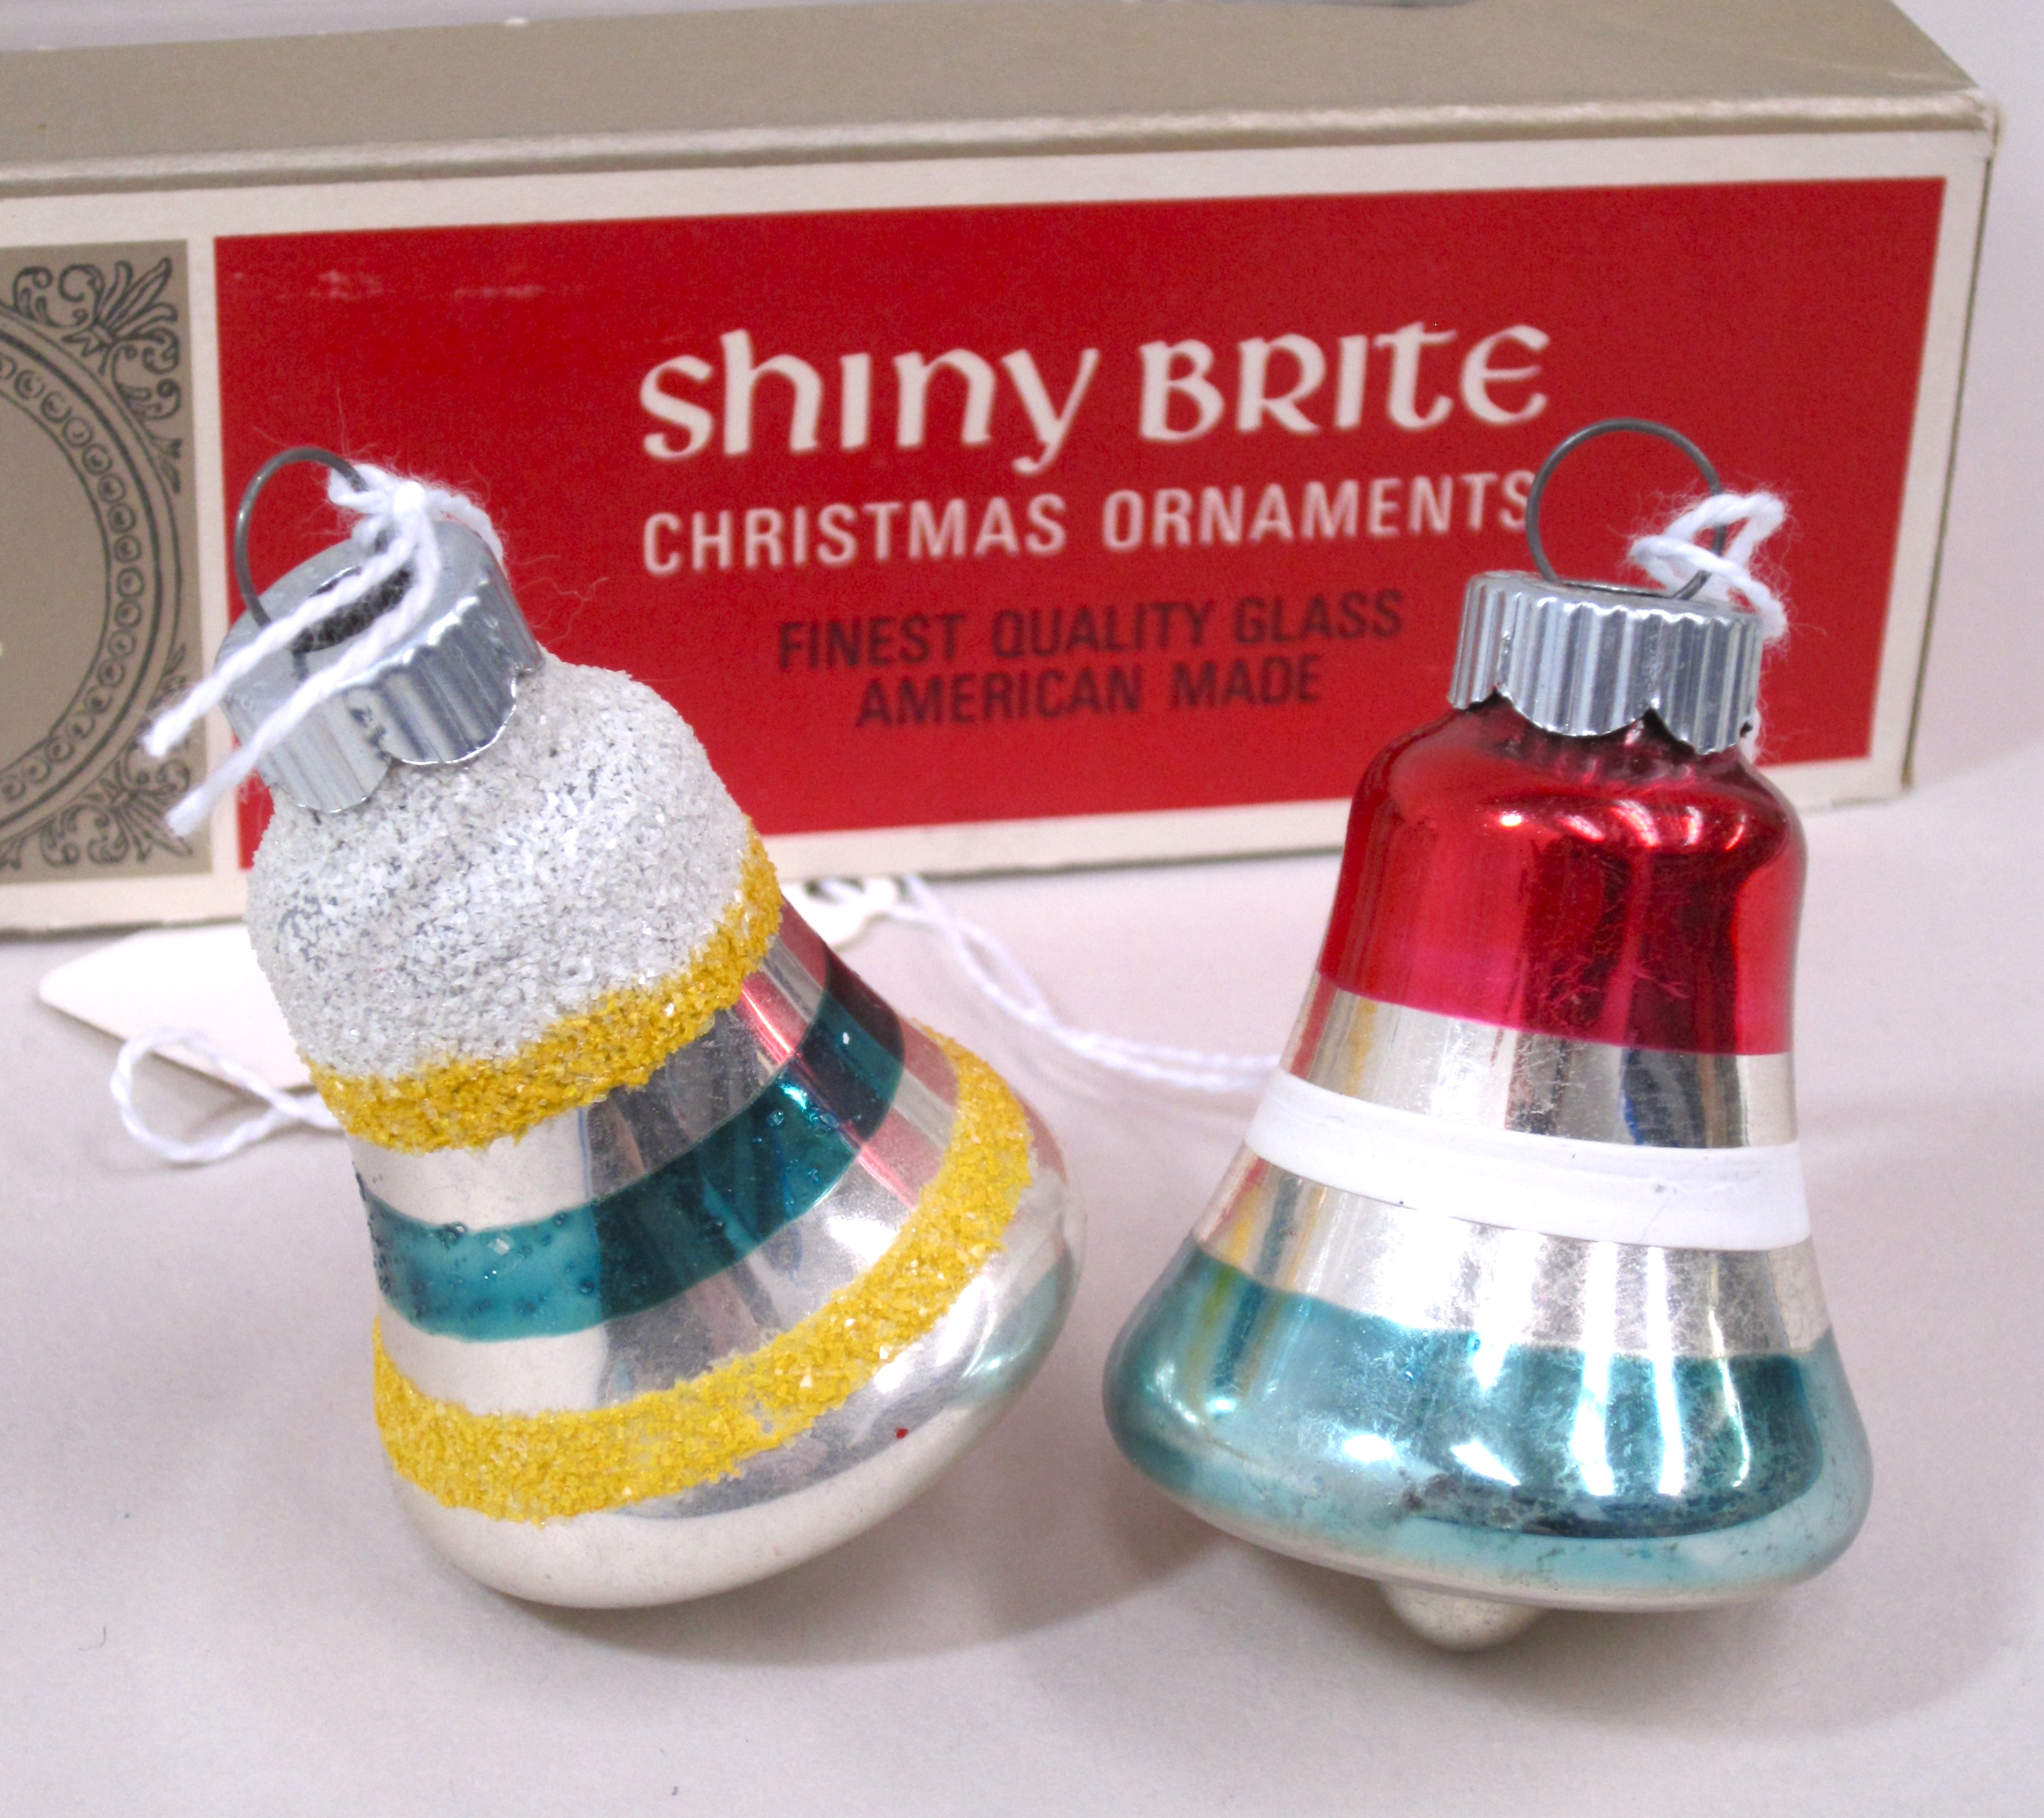 Shiny Brite Christmas Ornaments | Behind the Glass